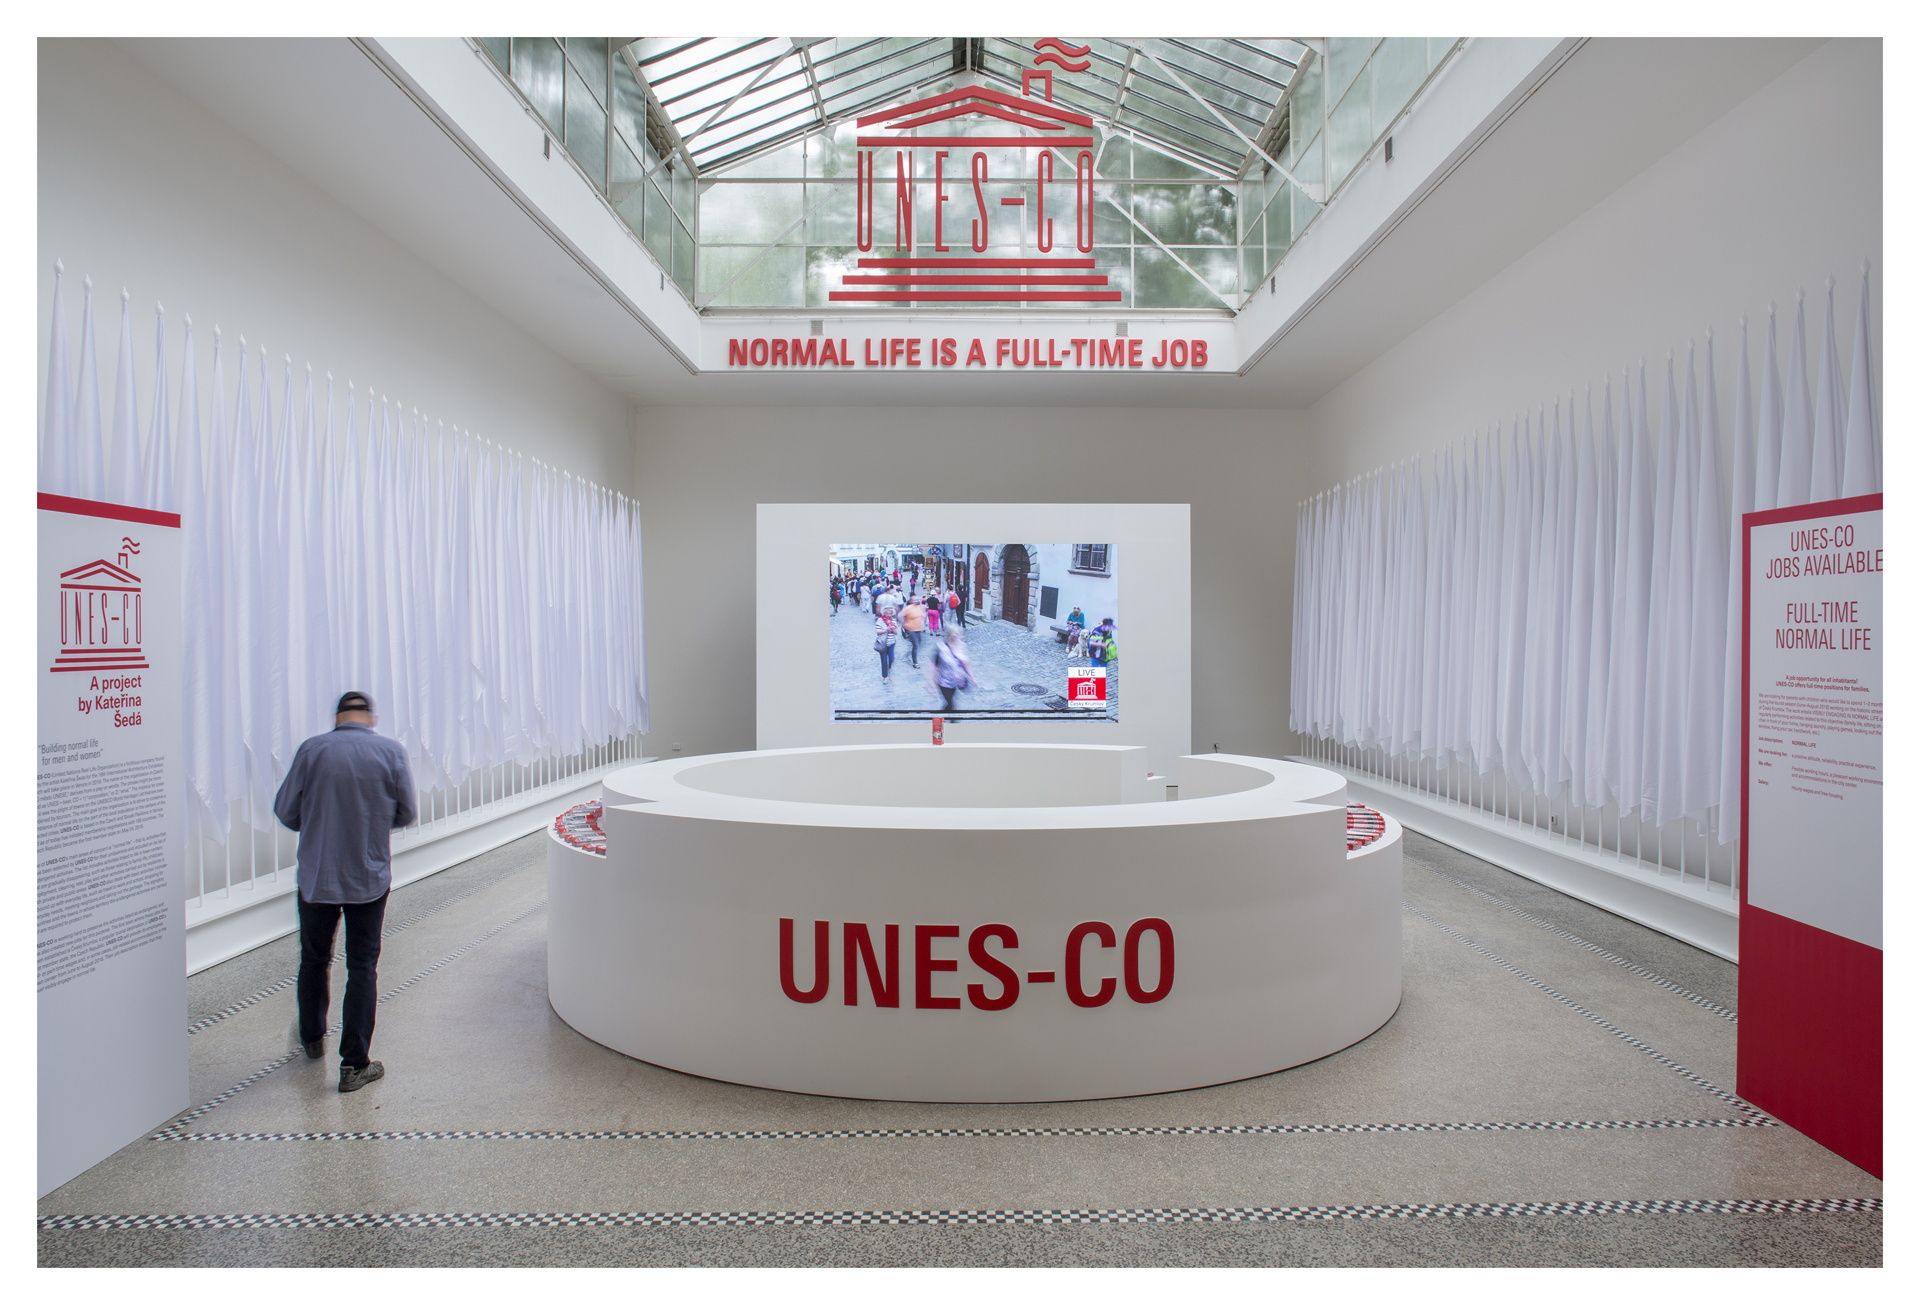 2018 Architecture Biennale UNESCO or normal life in the